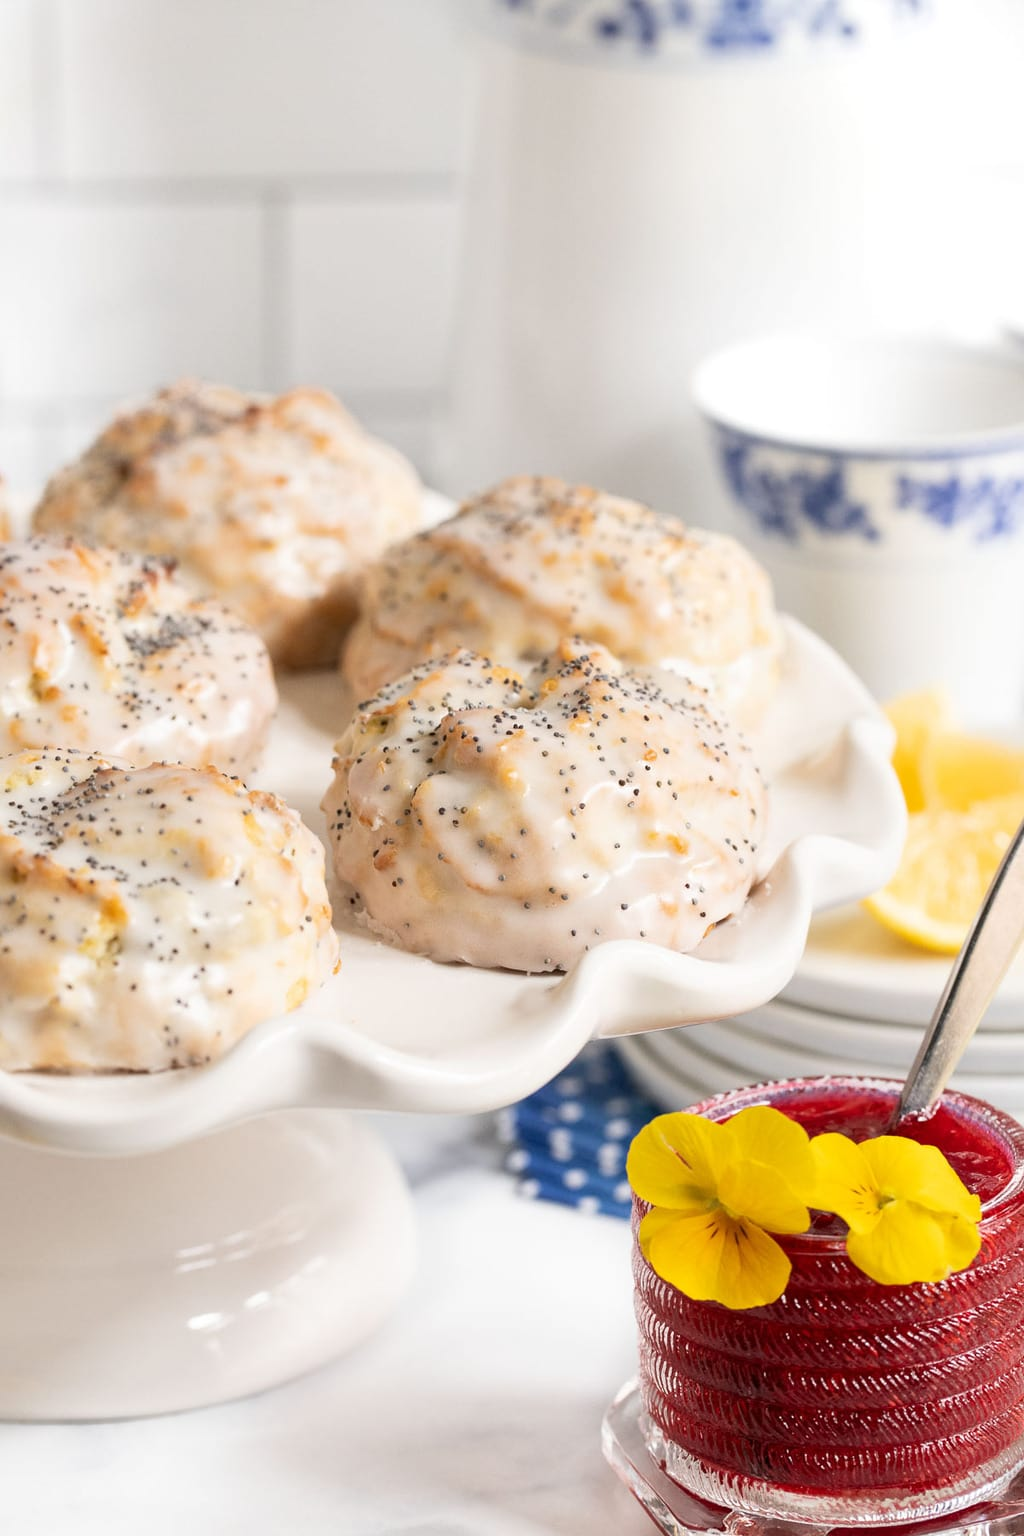 Vertical photo of a serving pedestal plate filled with Ridiculously Easy Lemon Poppy Seed Scones. A small jar of Raspberry Freezer Jam is in the foreground.